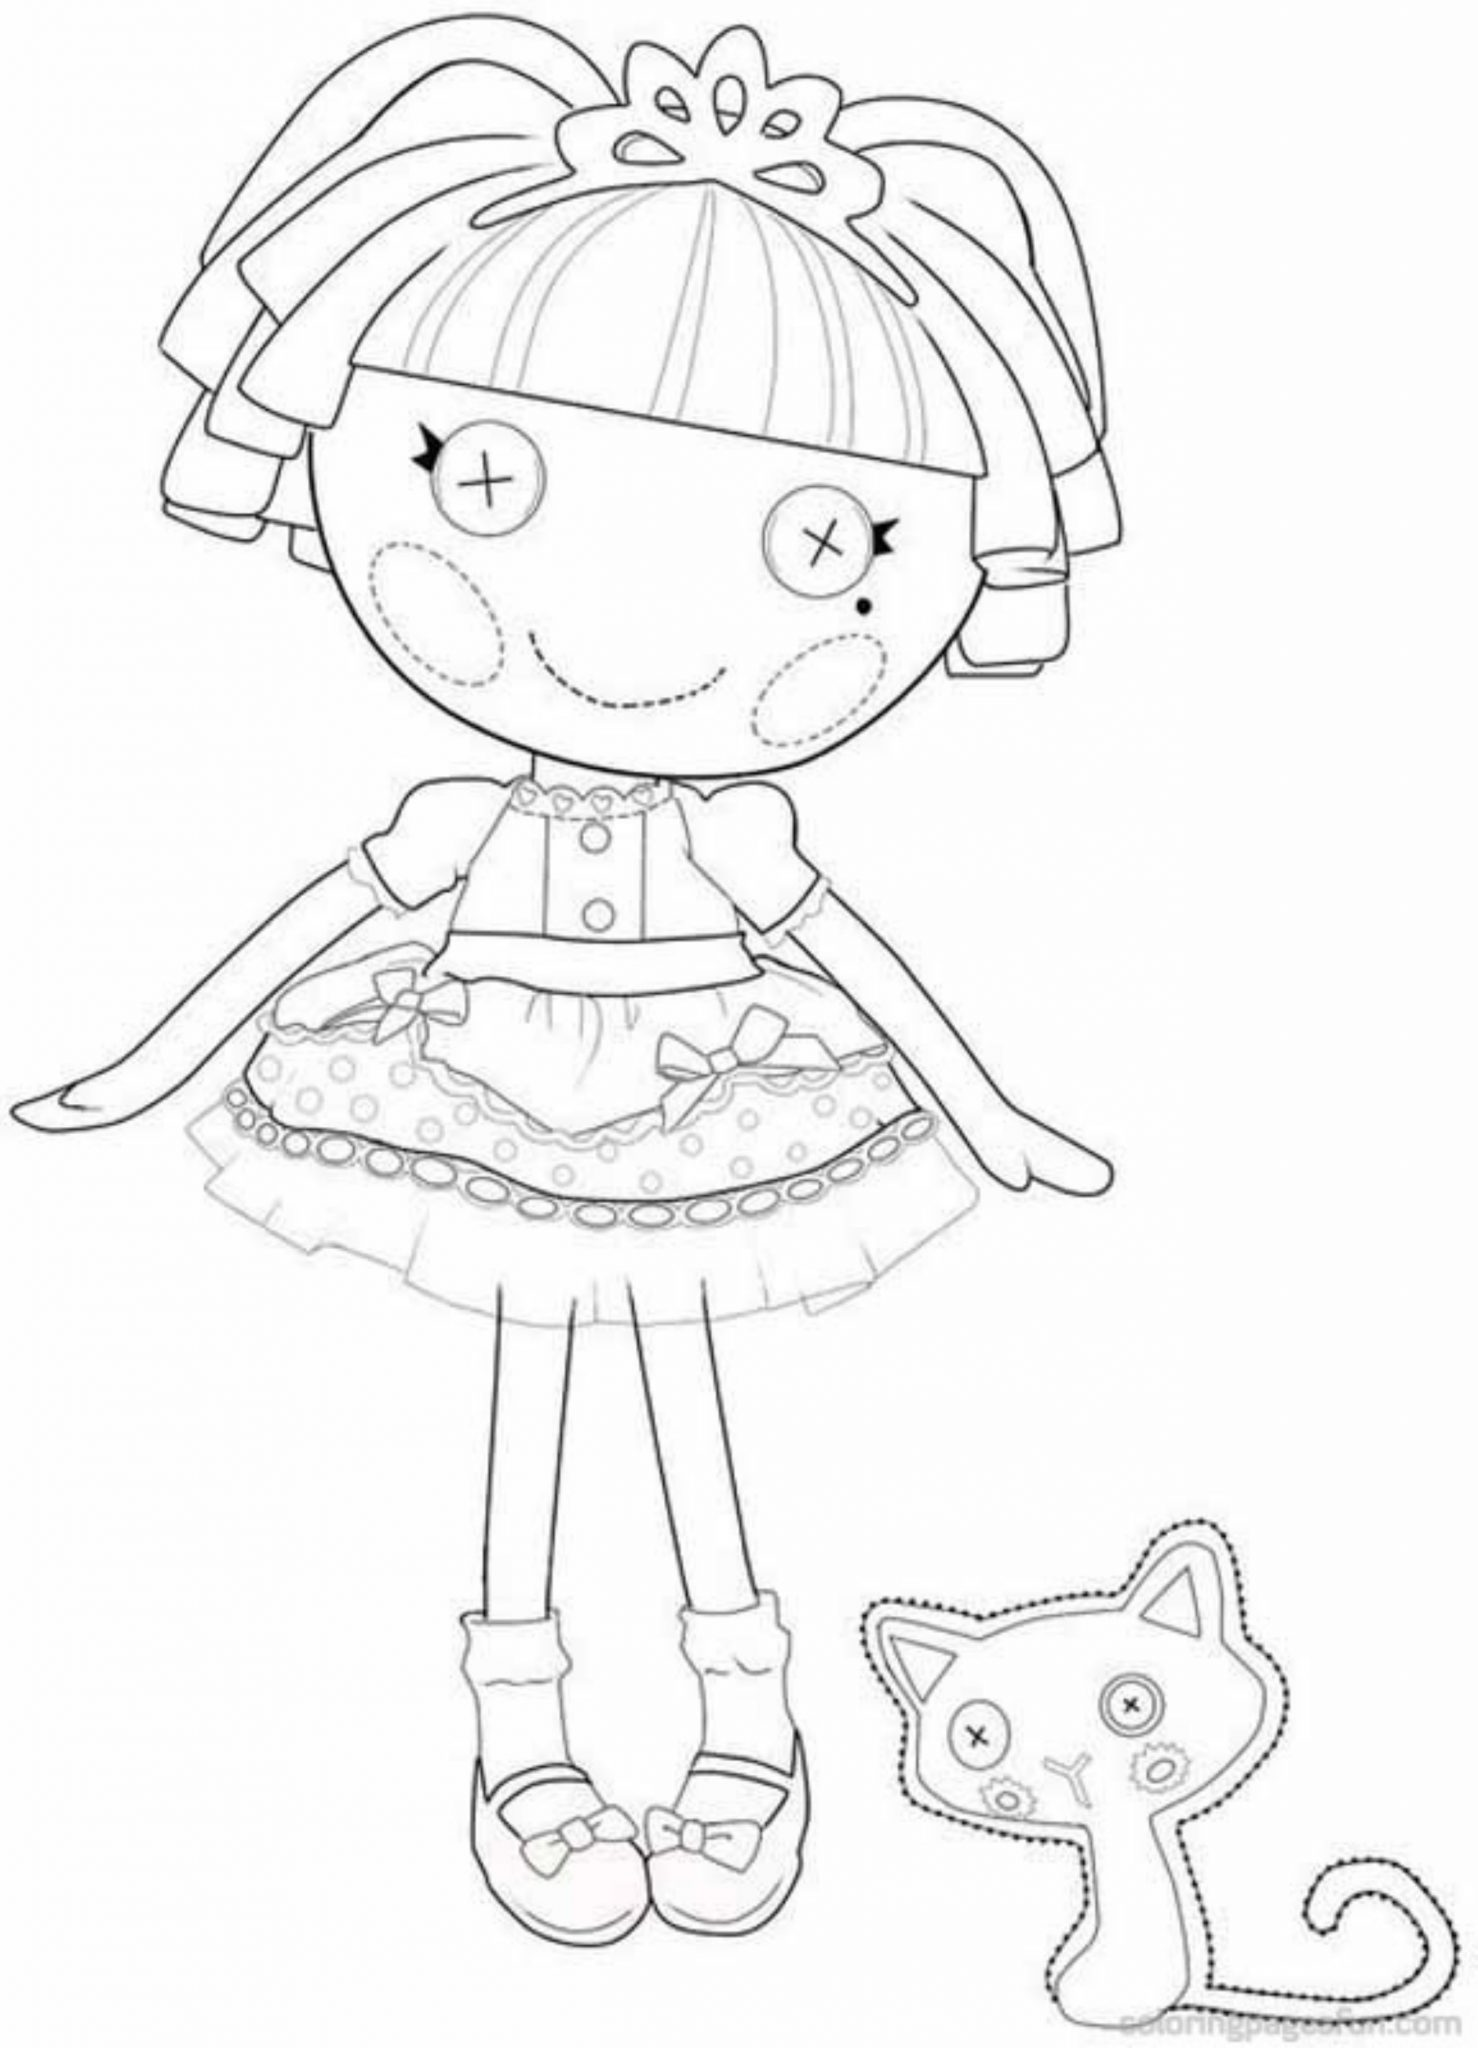 Free Coloring Pages Download Lalaloopsy Printable Bestappsforkids Of Color On